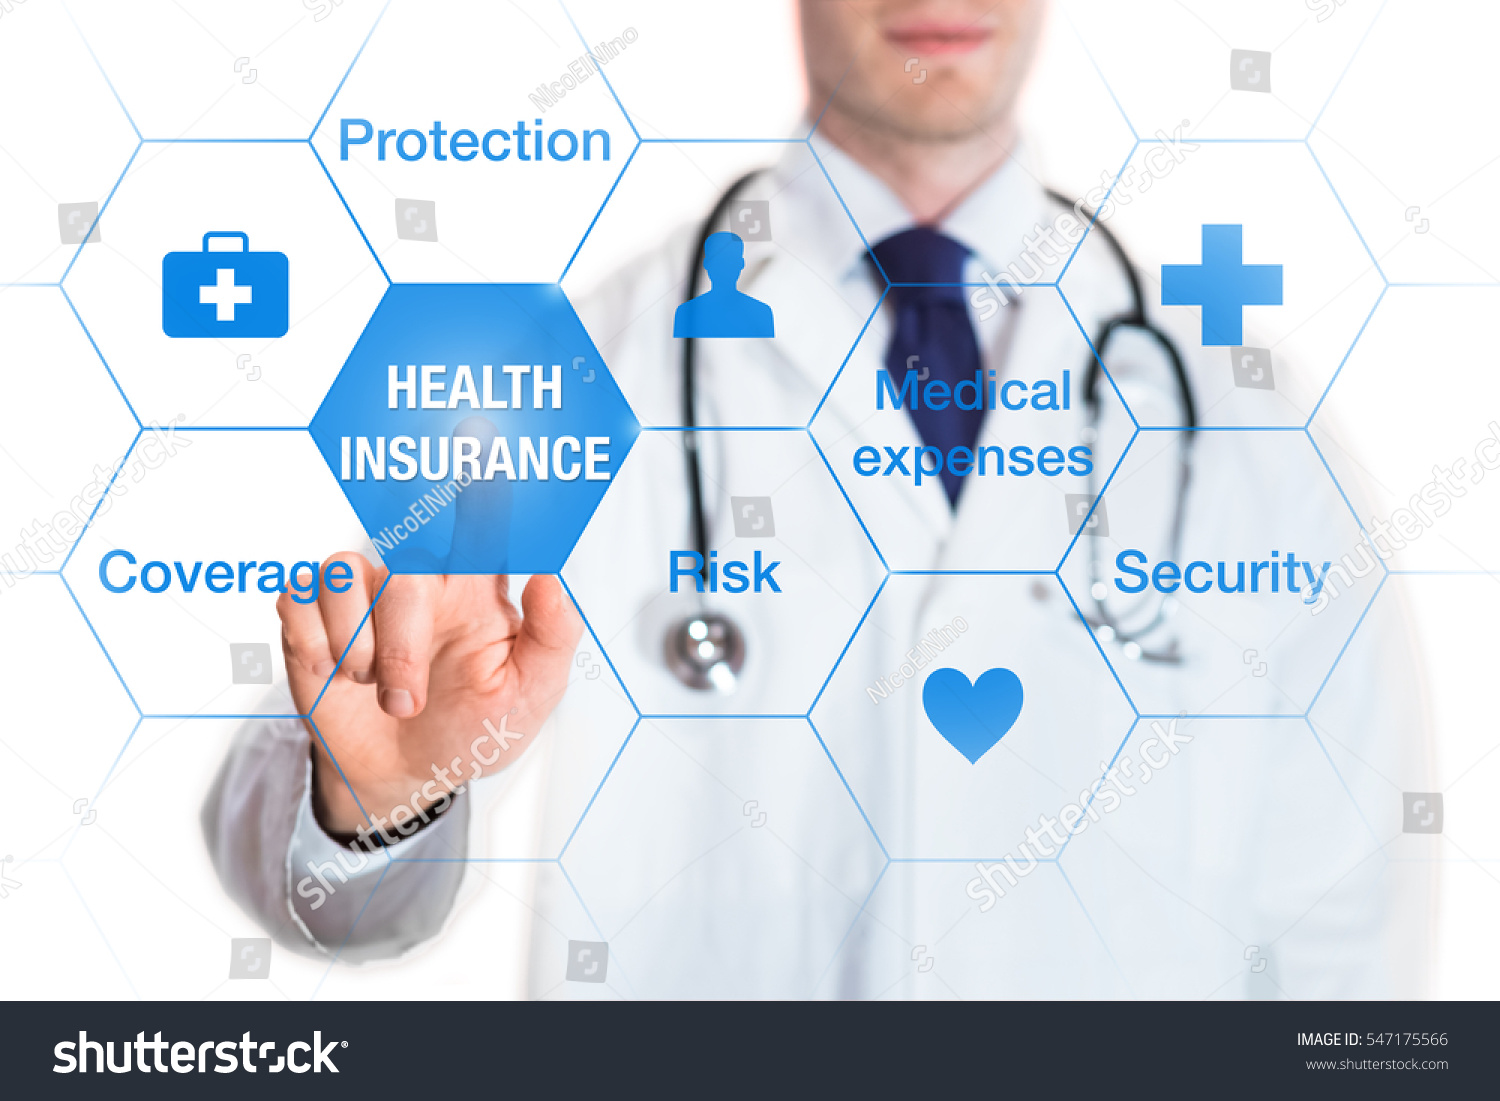 Health Insurance Concept Words Coverage Protection Stock. Windshield Replacement Philadelphia. Exterminator Louisville Ky Infinity Cable Tv. Online Sociology Degree Programs. California School Of Professional Psychology Fresno. Indiana Elementary School Commands In French. Is Muscle Milk Good After A Workout. Vehicle Protection Plan Low Rate Credit Cards. Should I Hire A Financial Advisor